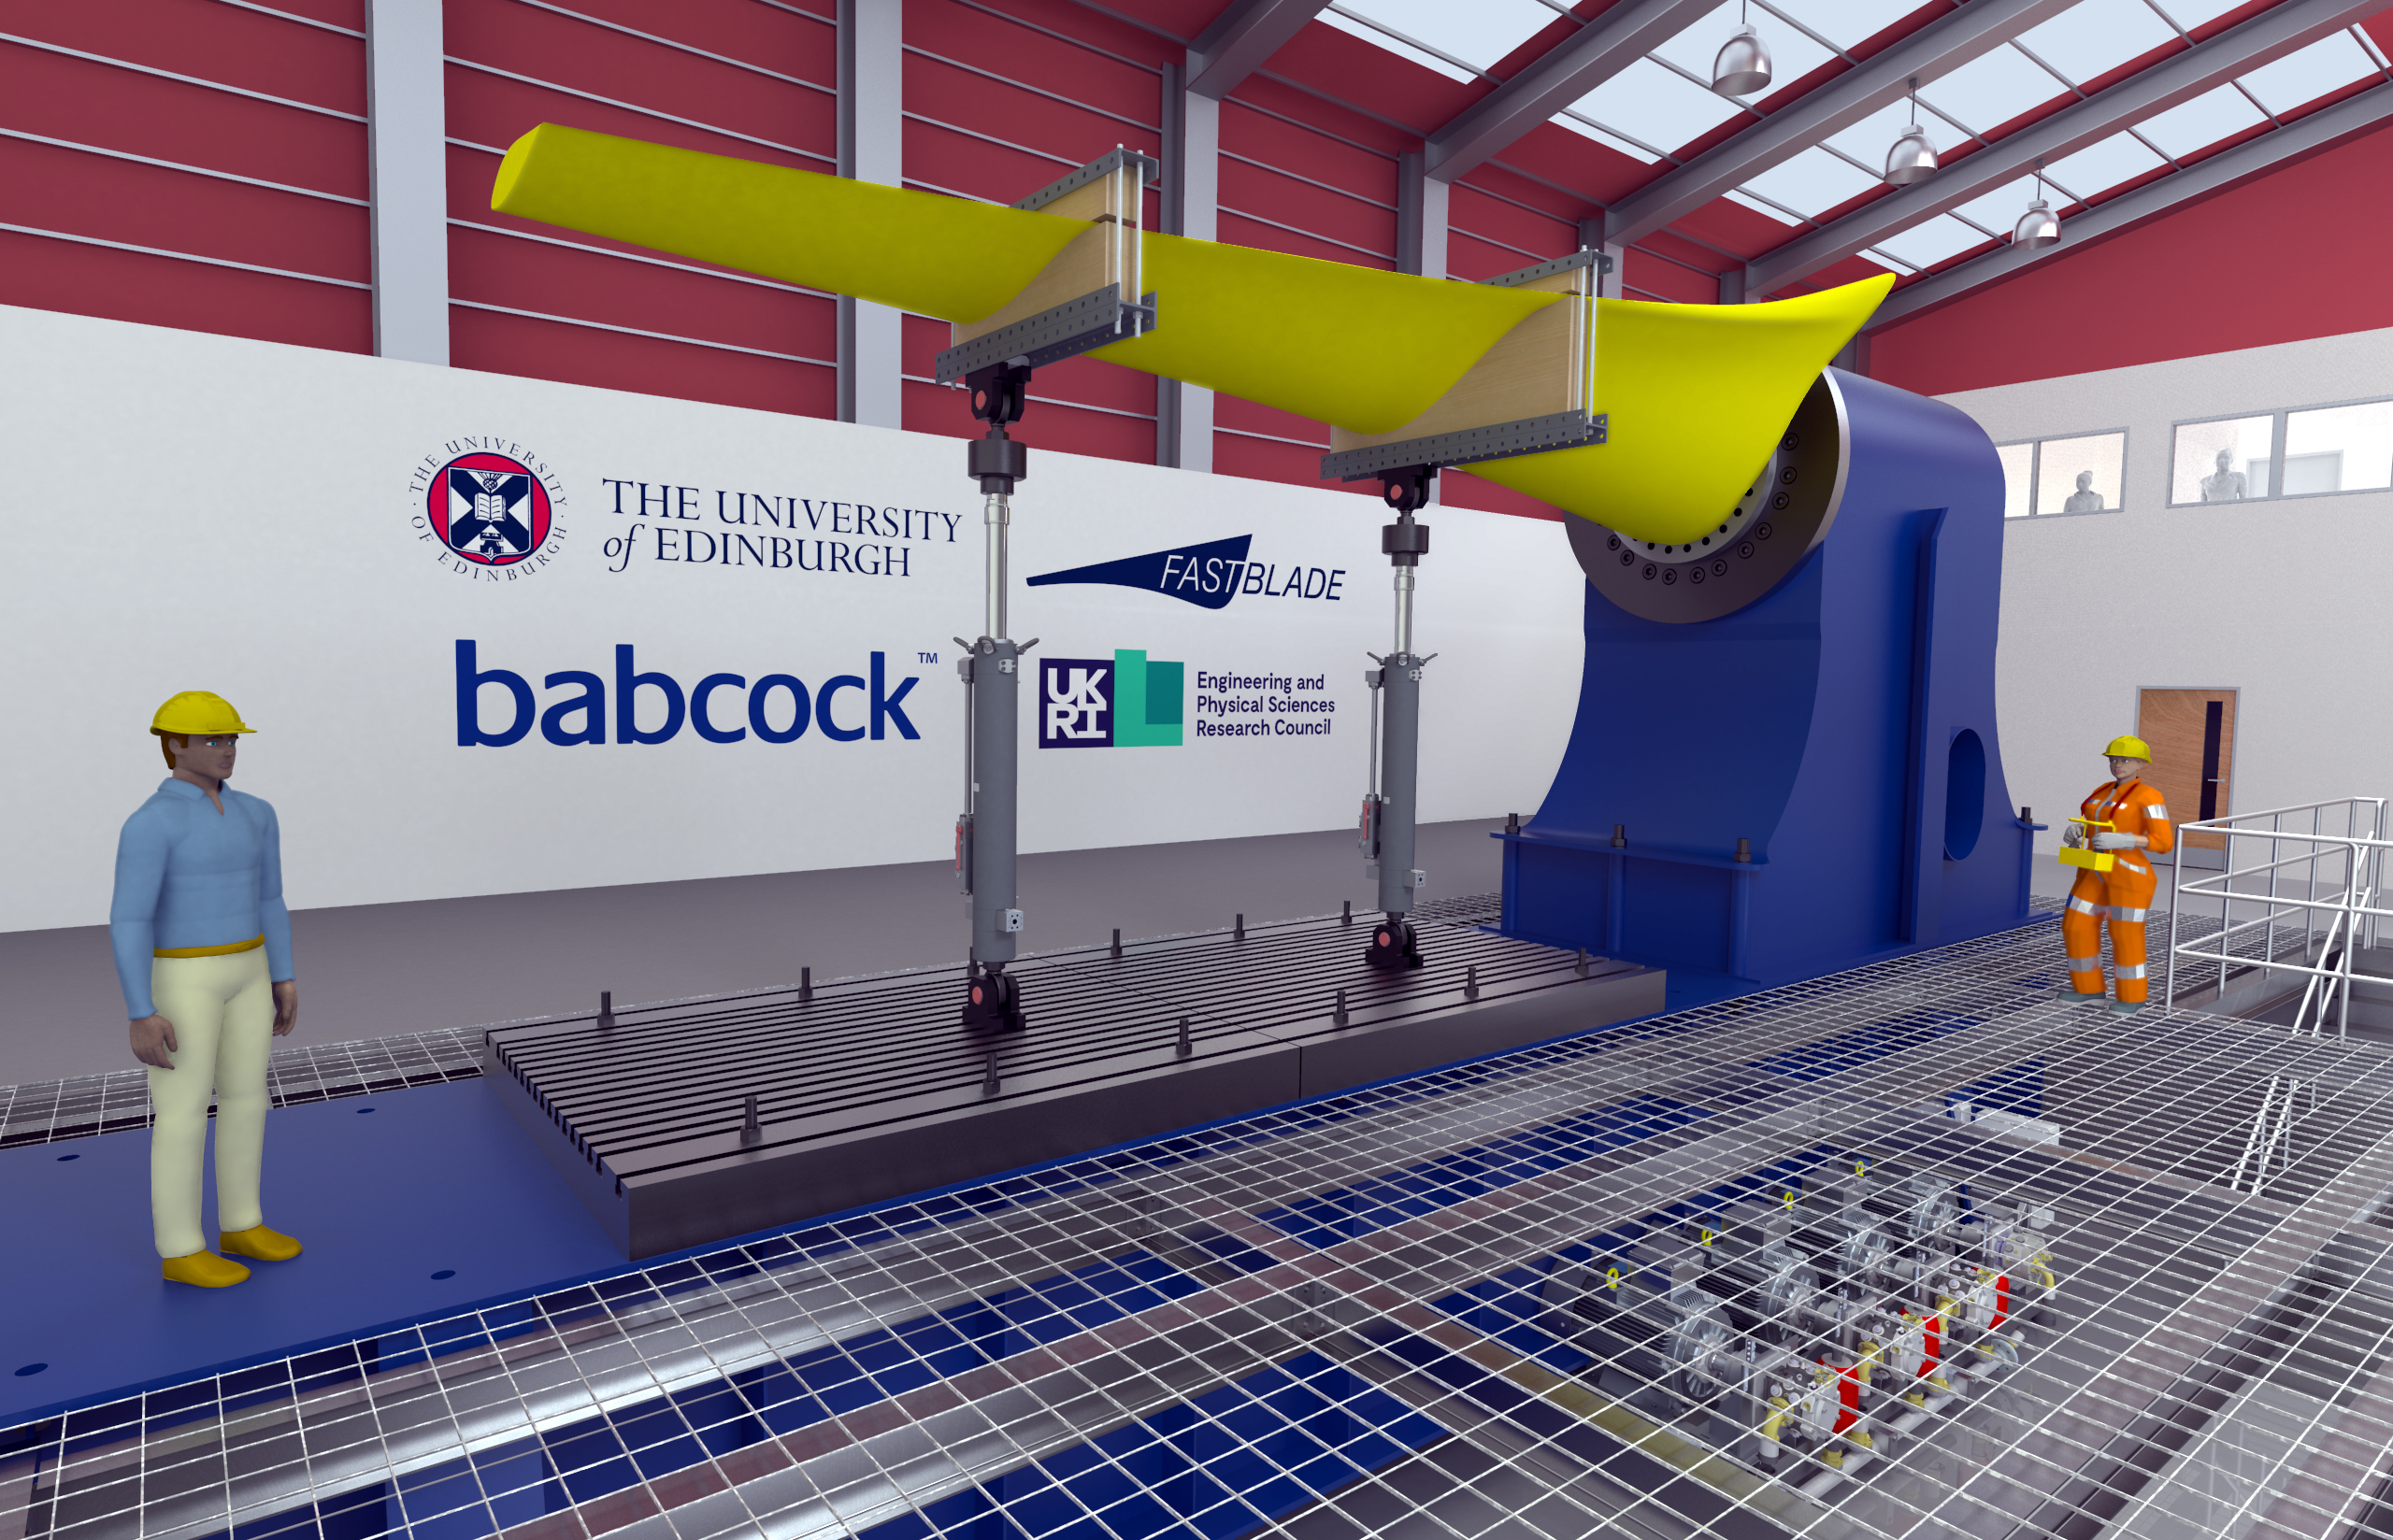 The Fastblade research facility being constructed in ROsyth will be only one of its kind in the world.